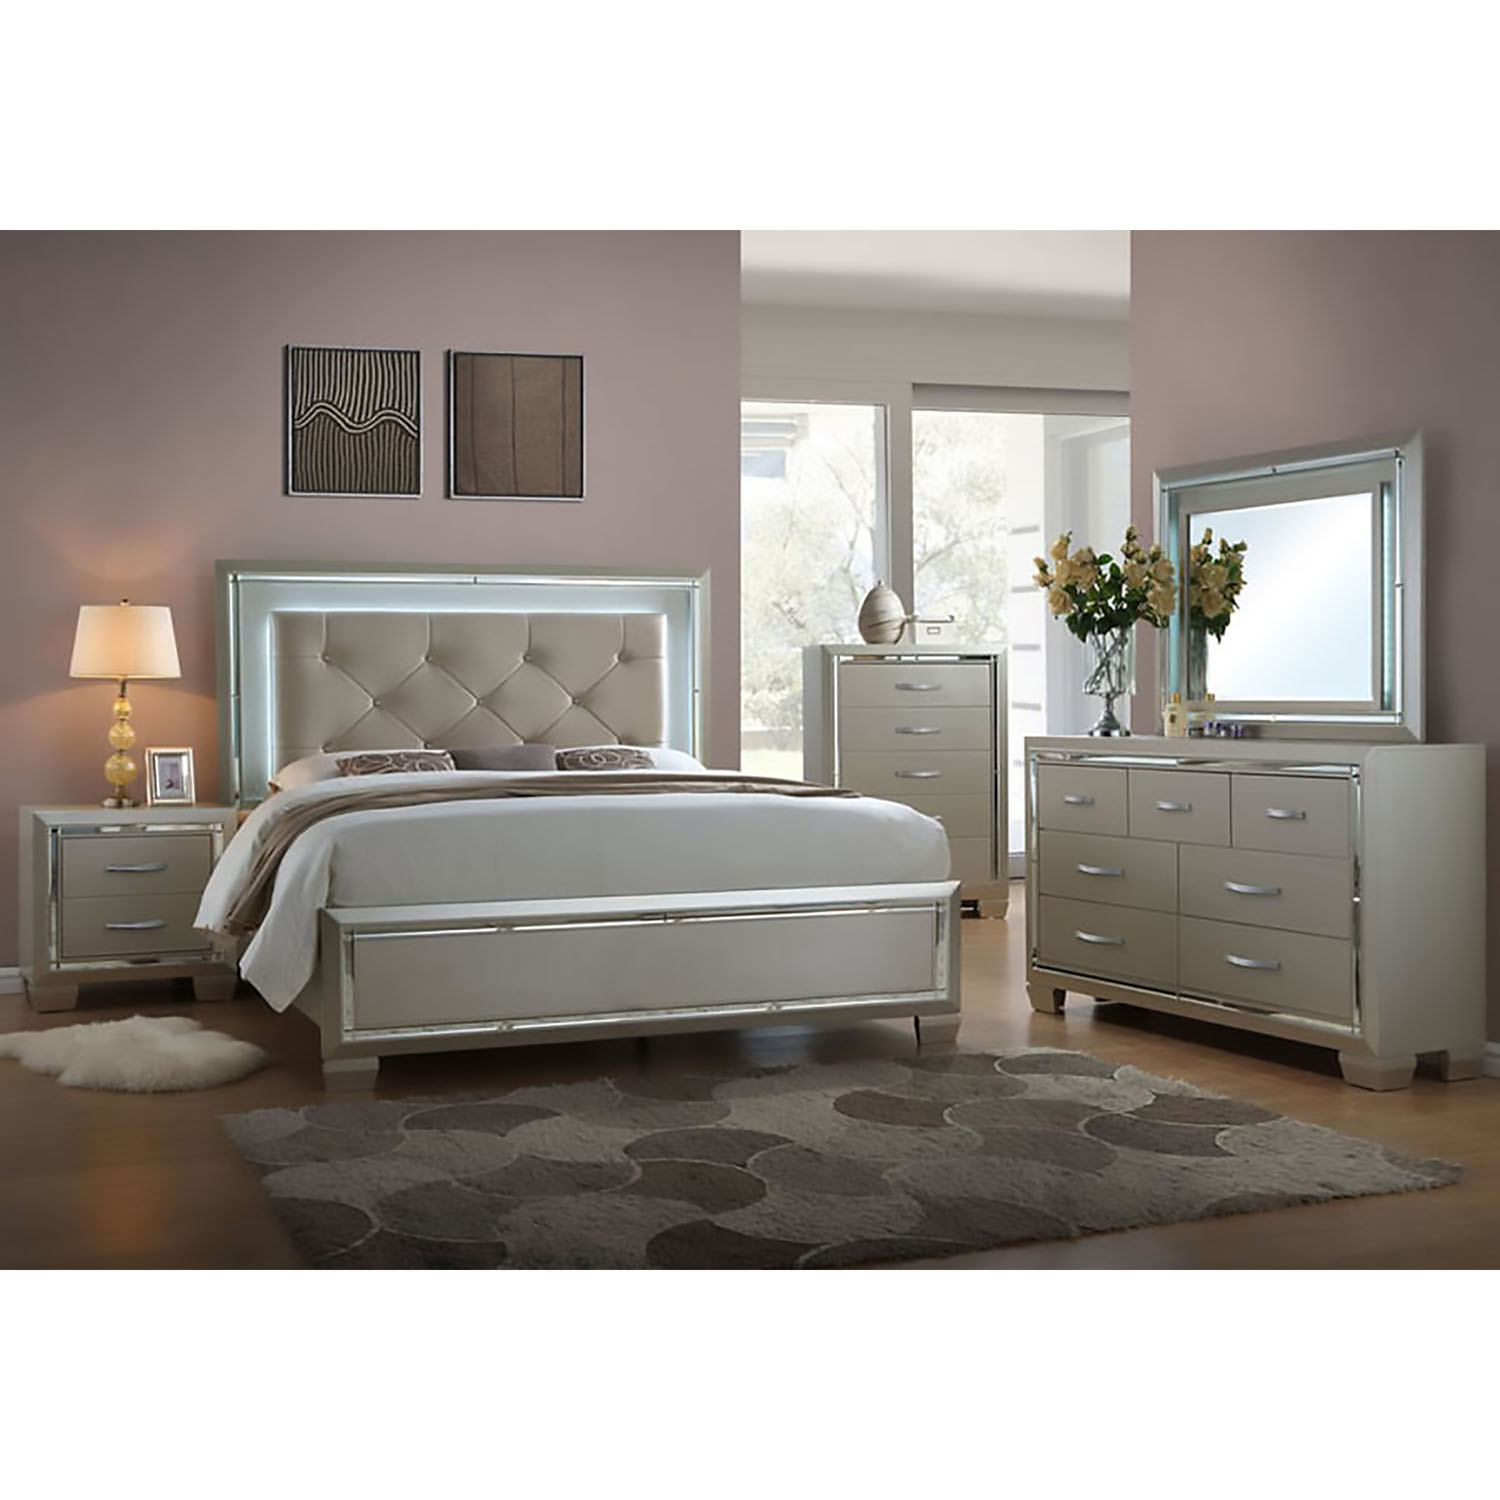 Elegance 5pc full size bedroom suite 98117a5f1 cm - Suite cm ...